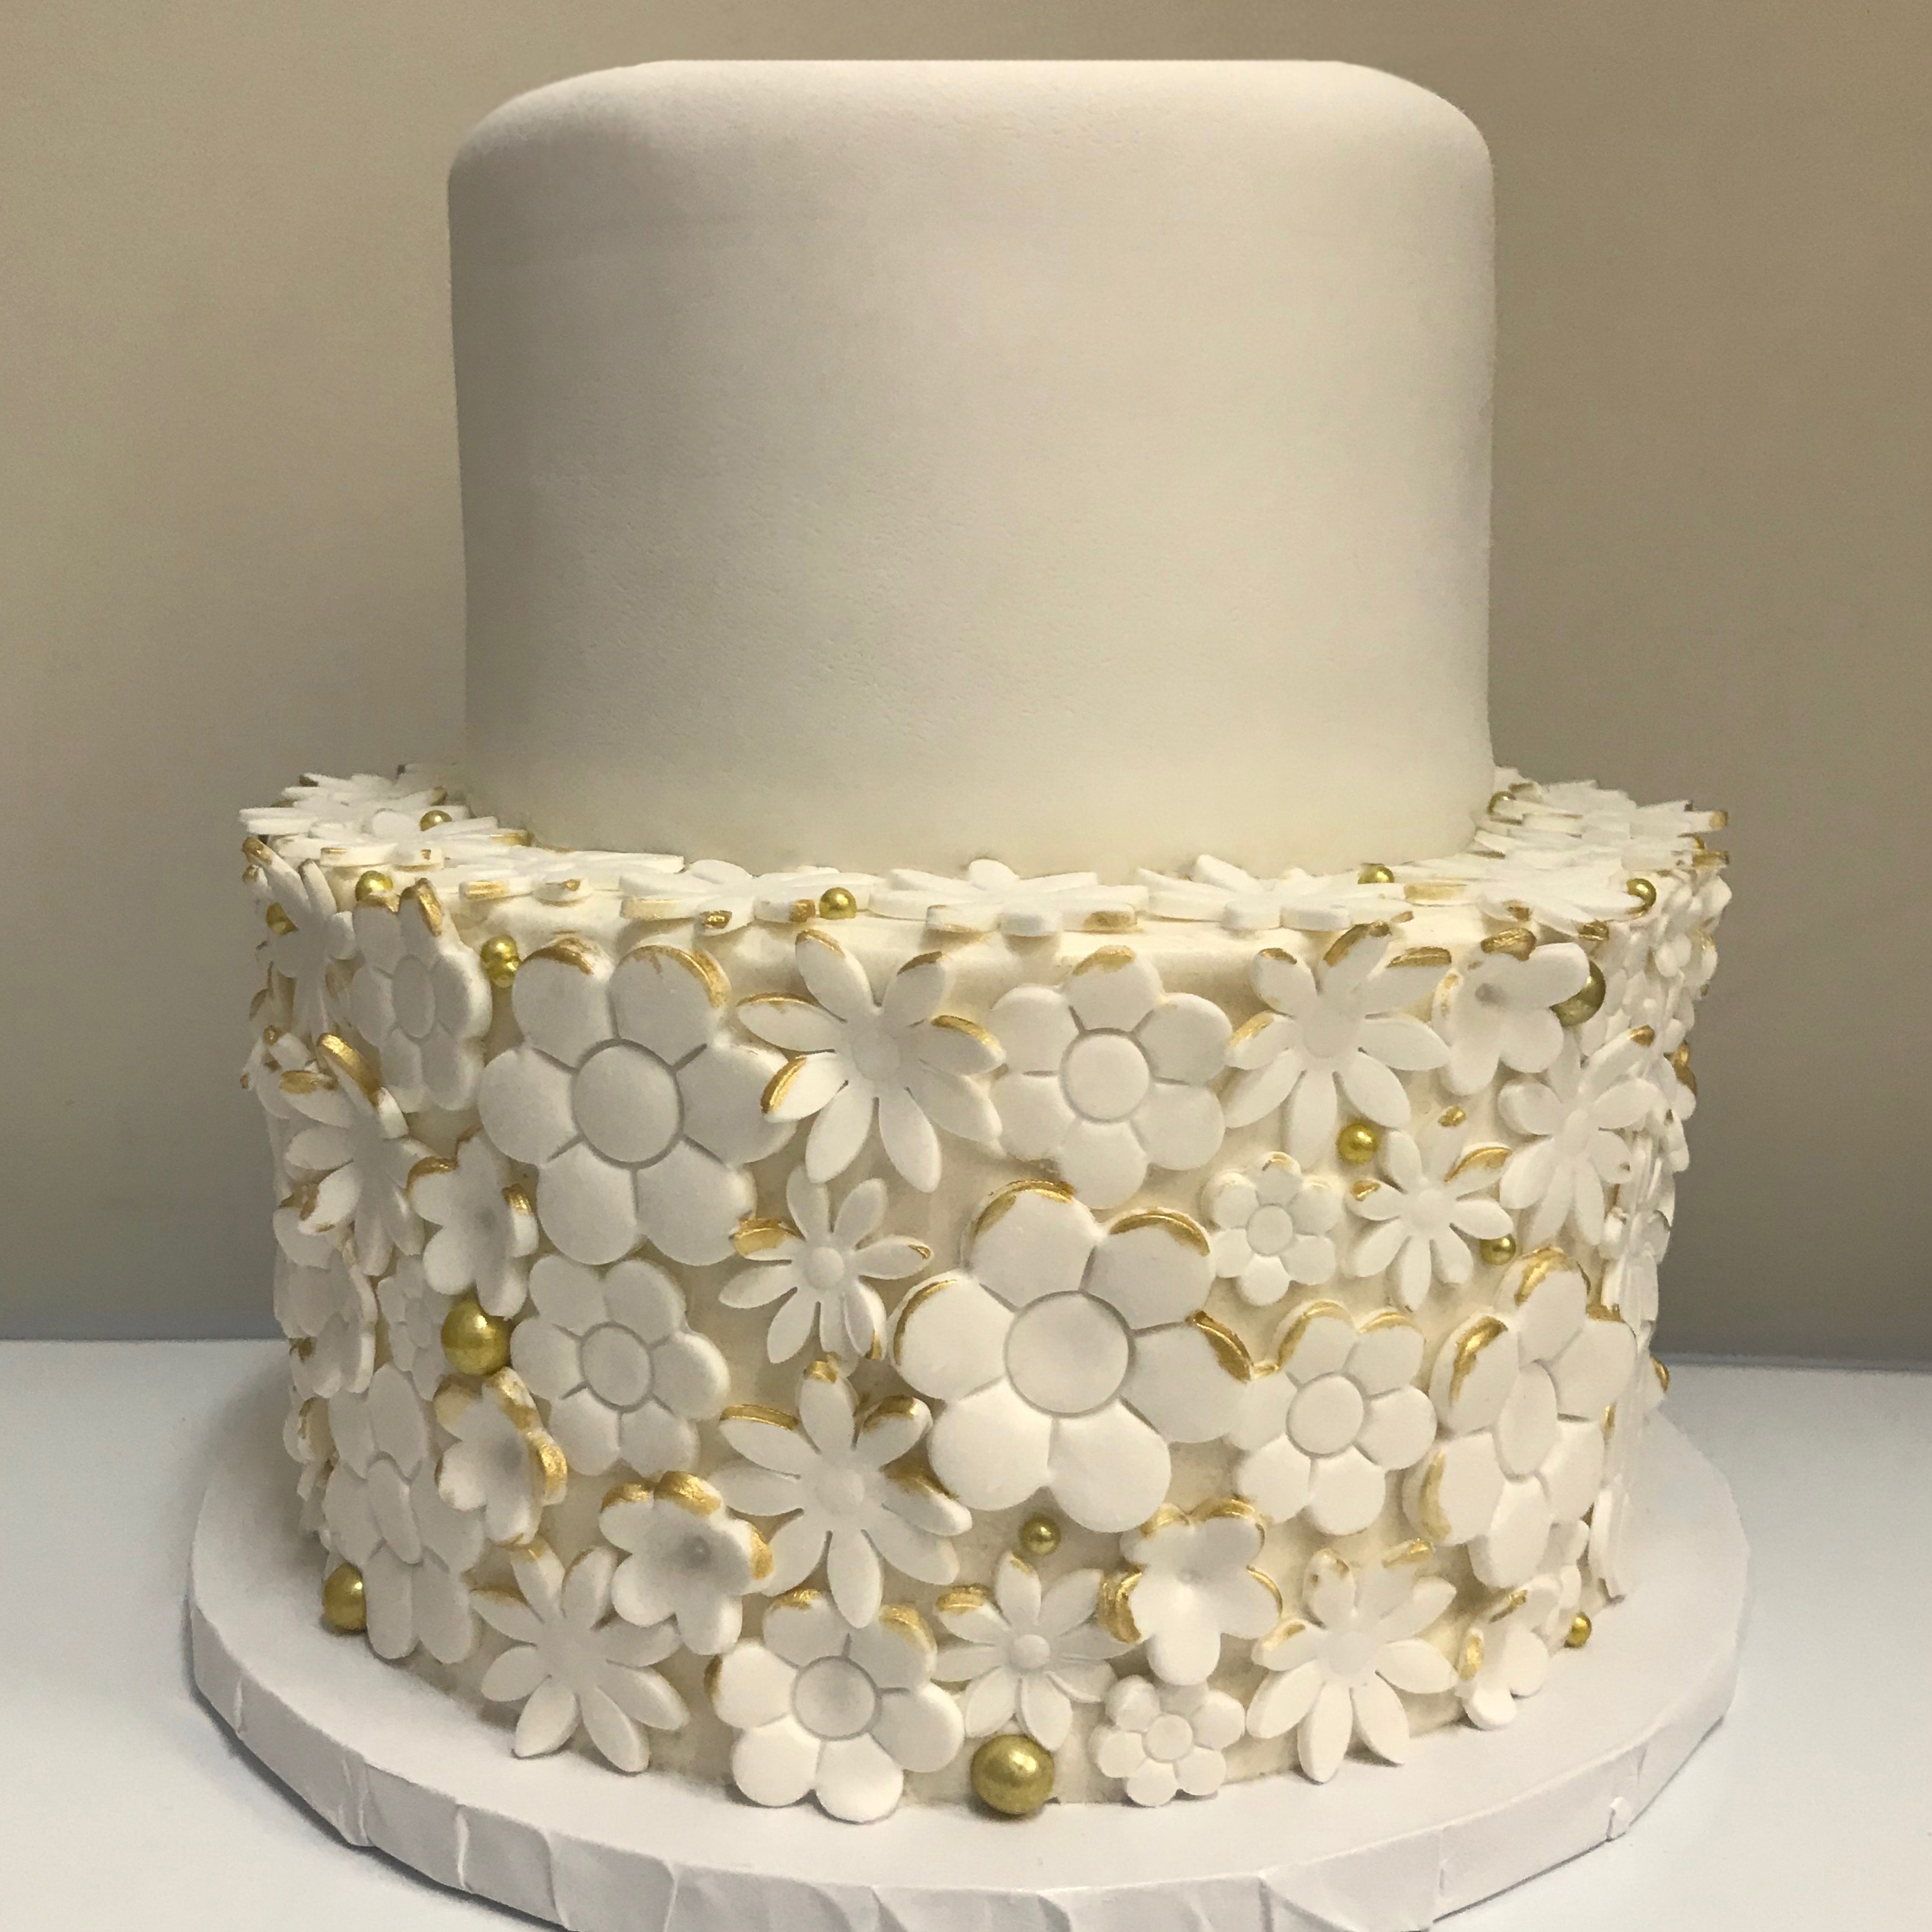 Flowers and gold sugar pearls